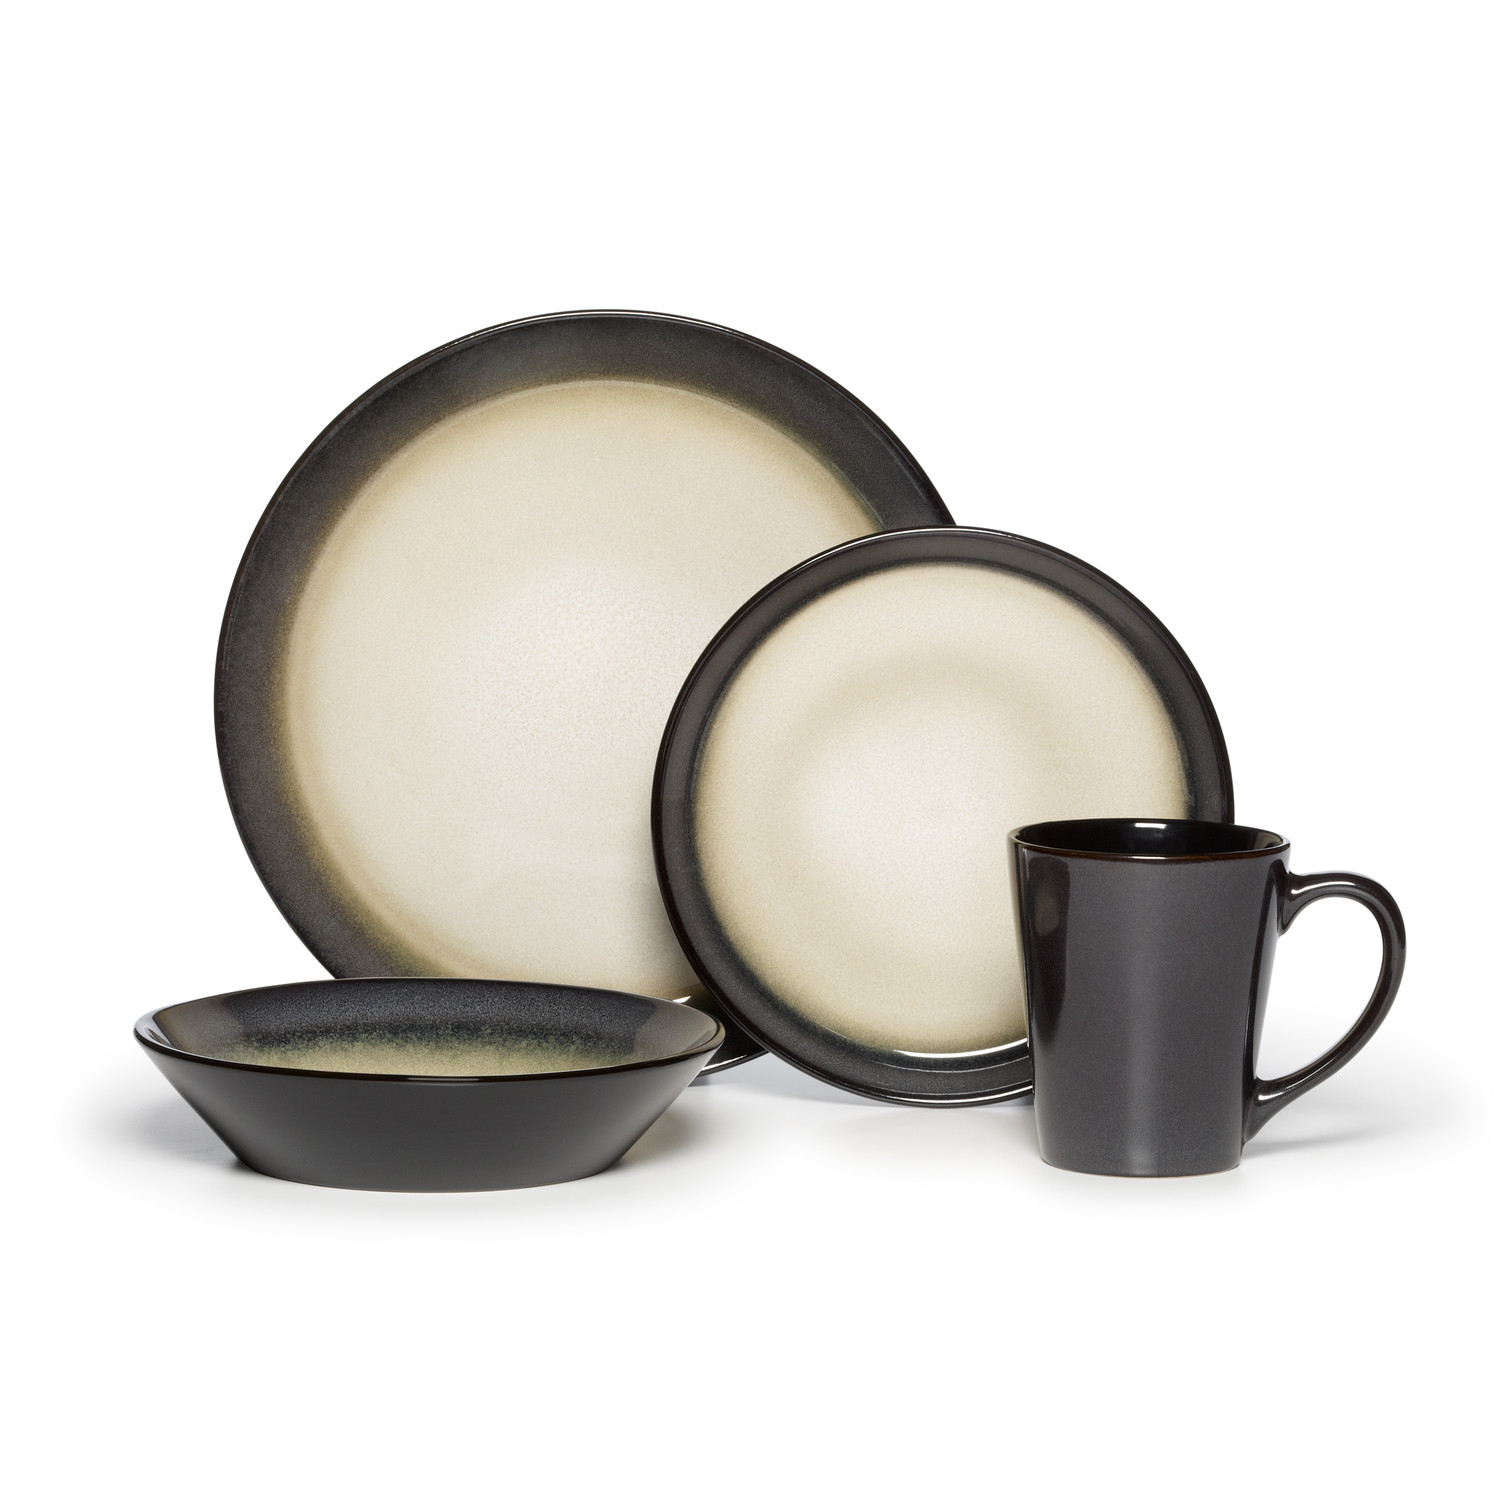 Pfaltzgraff Dinnerware set in black and white theme for chic dinnerware ideas